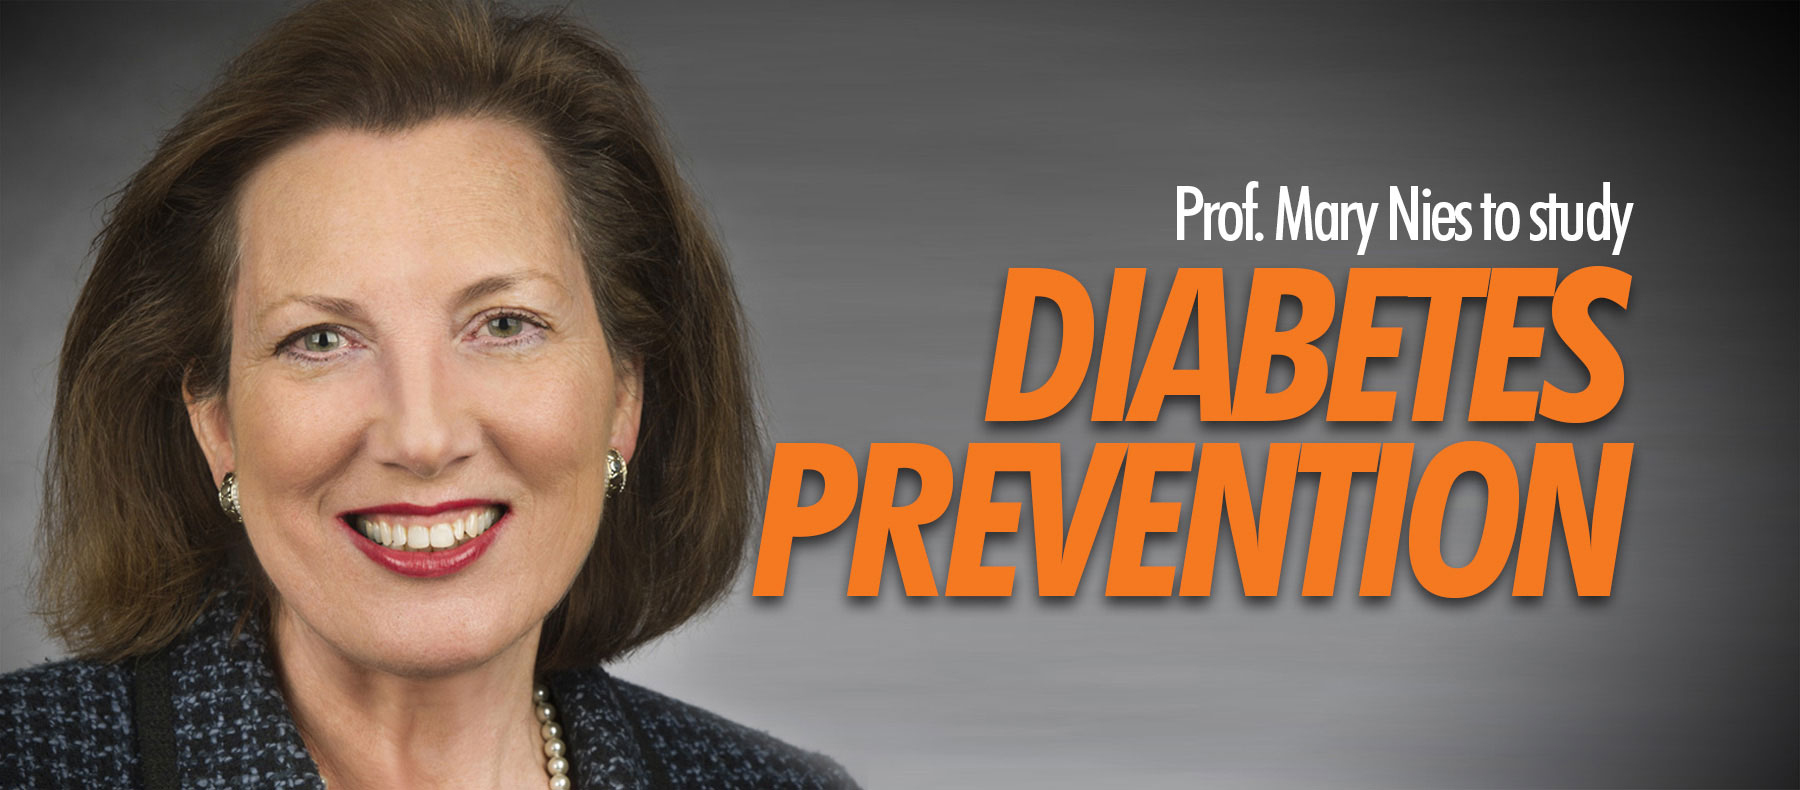 Professor Mary Nies to study Diabetes Prevention.